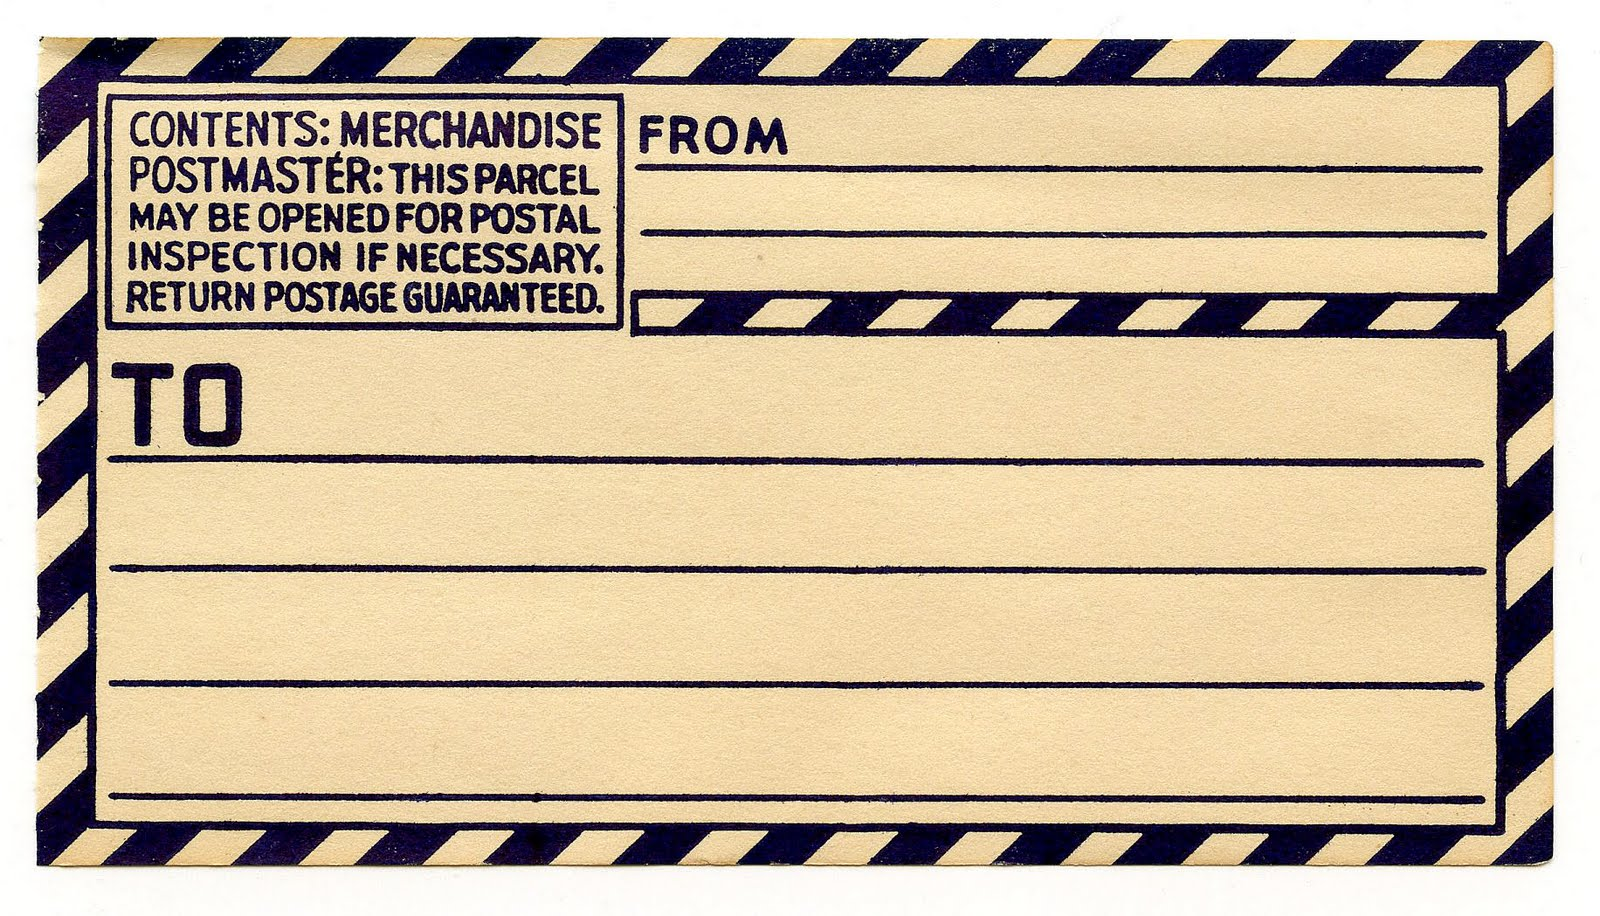 Vintage Clip Art - Old Gummed Parcel Post Label - The Graphics Fairy